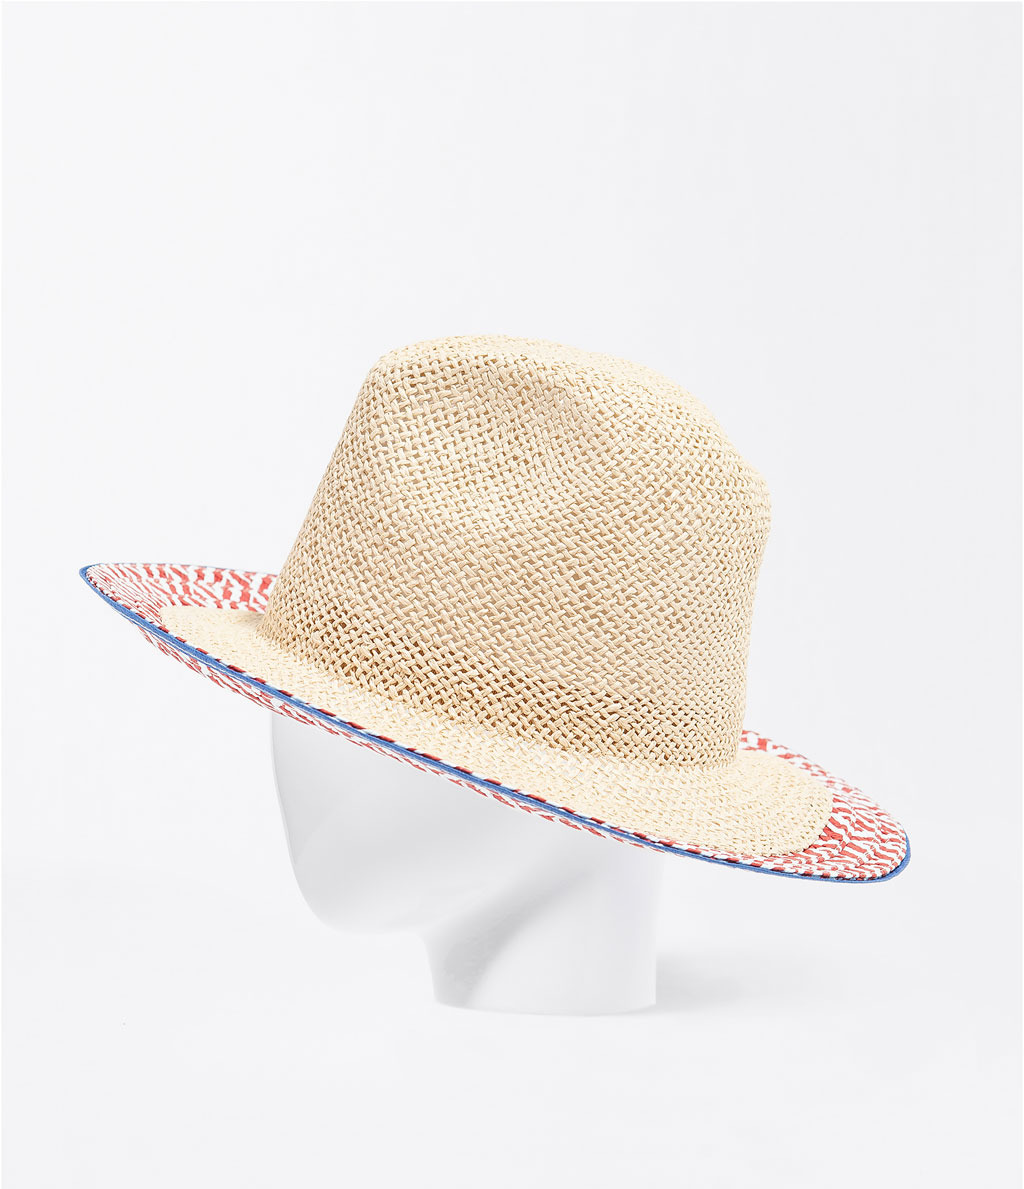 Raffia Hat - predominant colour: nude; occasions: casual, holiday; type of pattern: standard; style: brimmed; size: standard; material: macrame/raffia/straw; pattern: patterned/print; season: s/s 2014